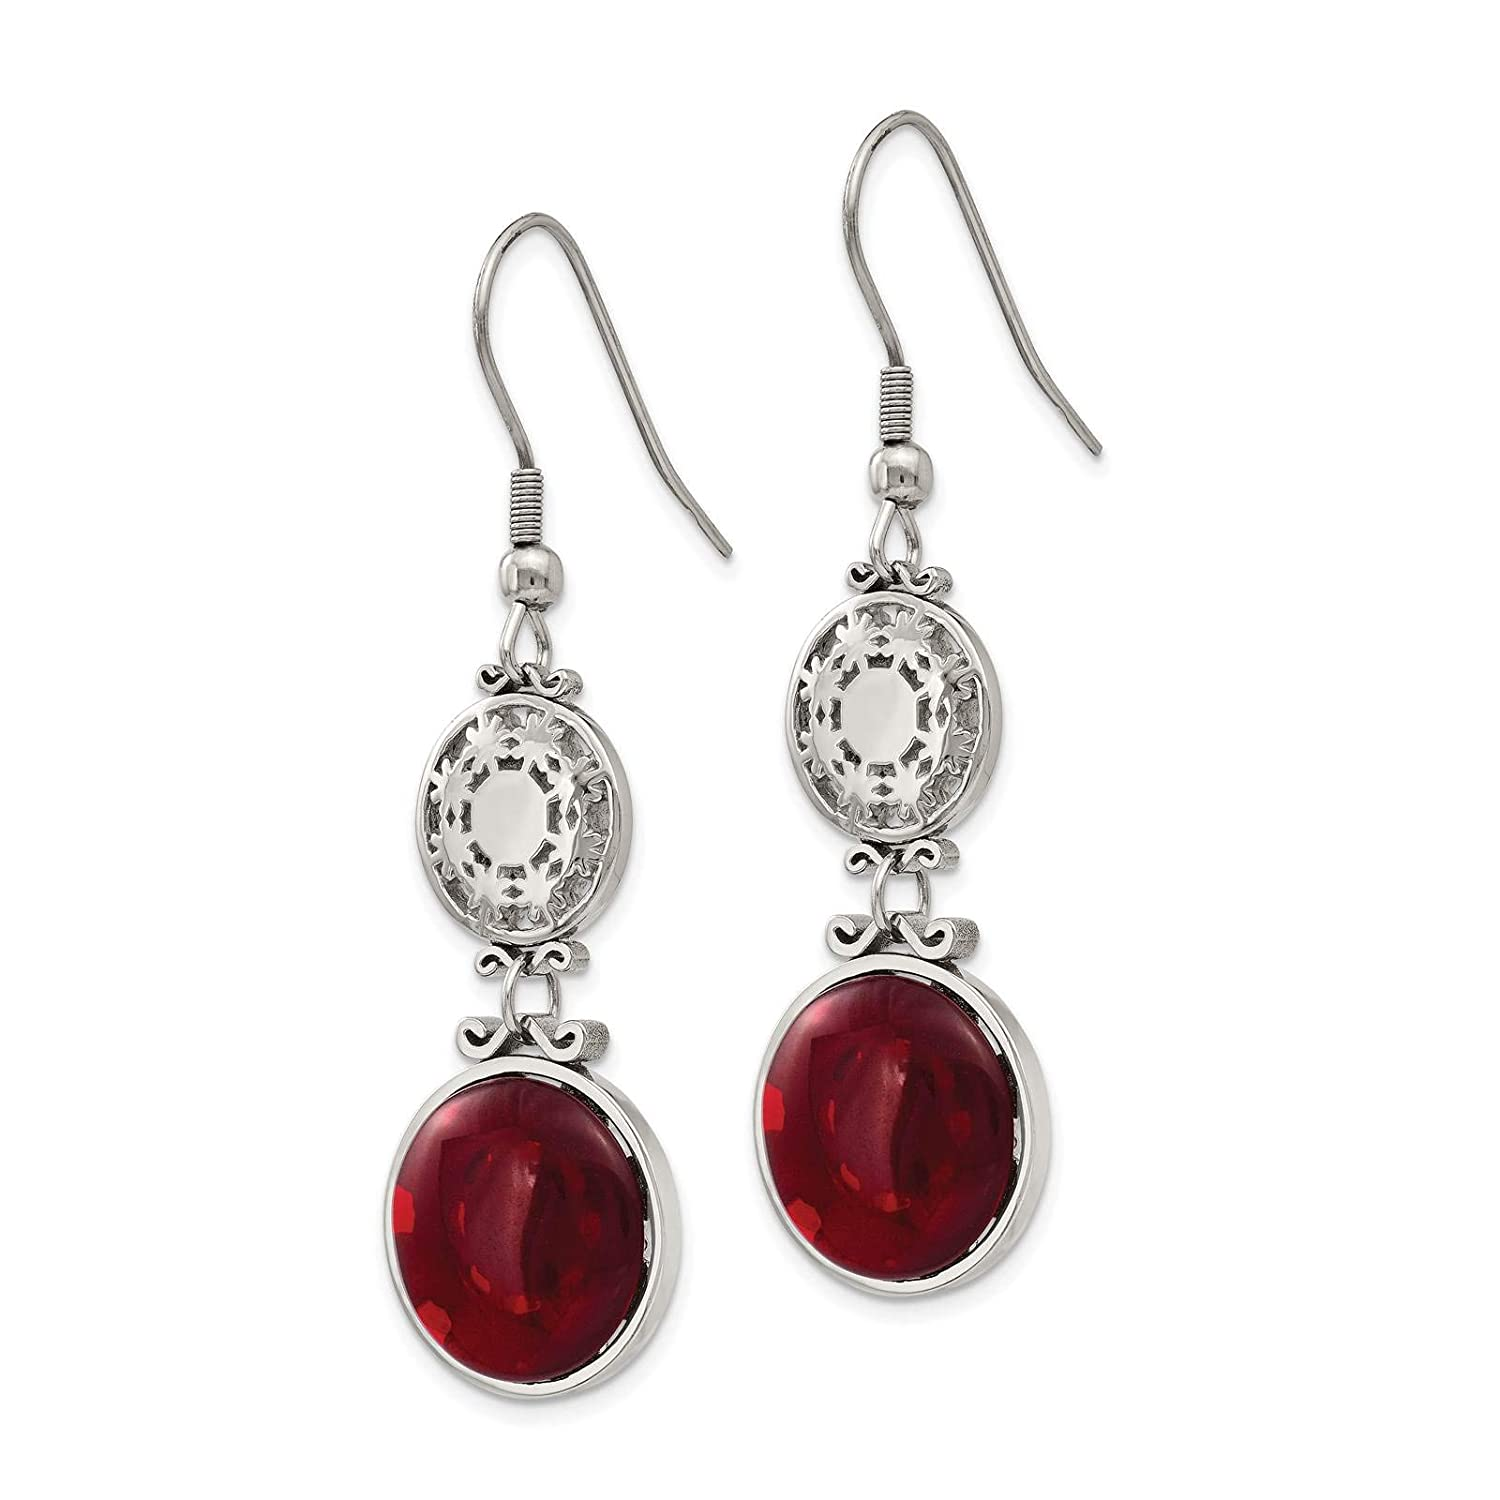 Stainless Steel Polished Circle w//Red Glass Dangle Earrings